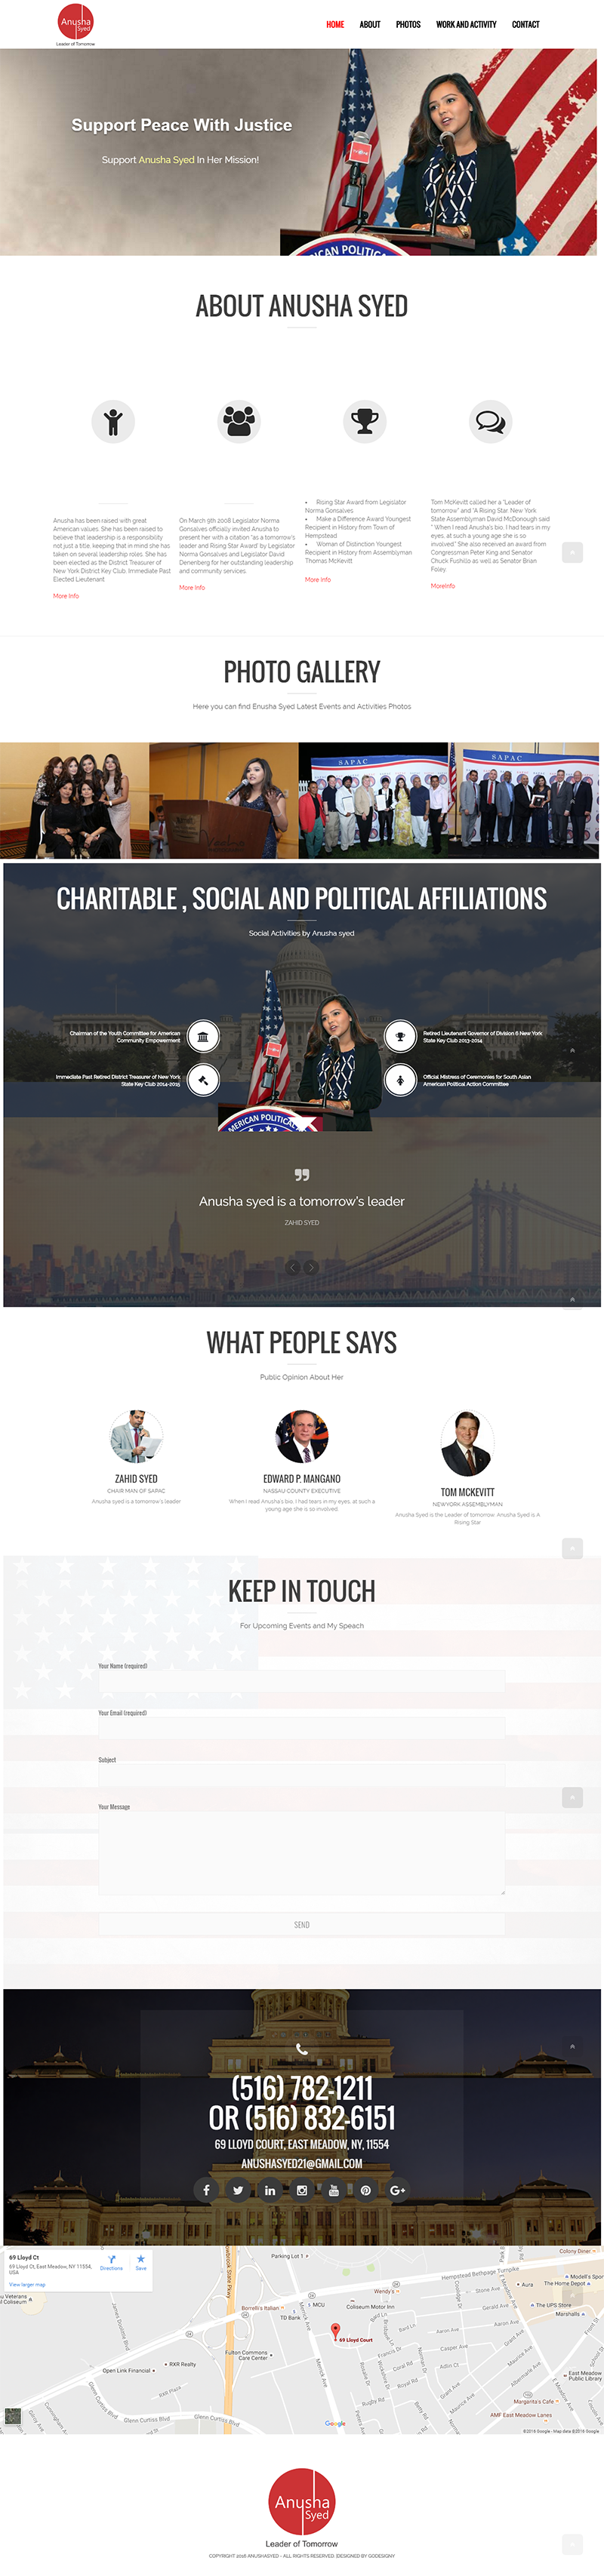 Personal Profile Website Design